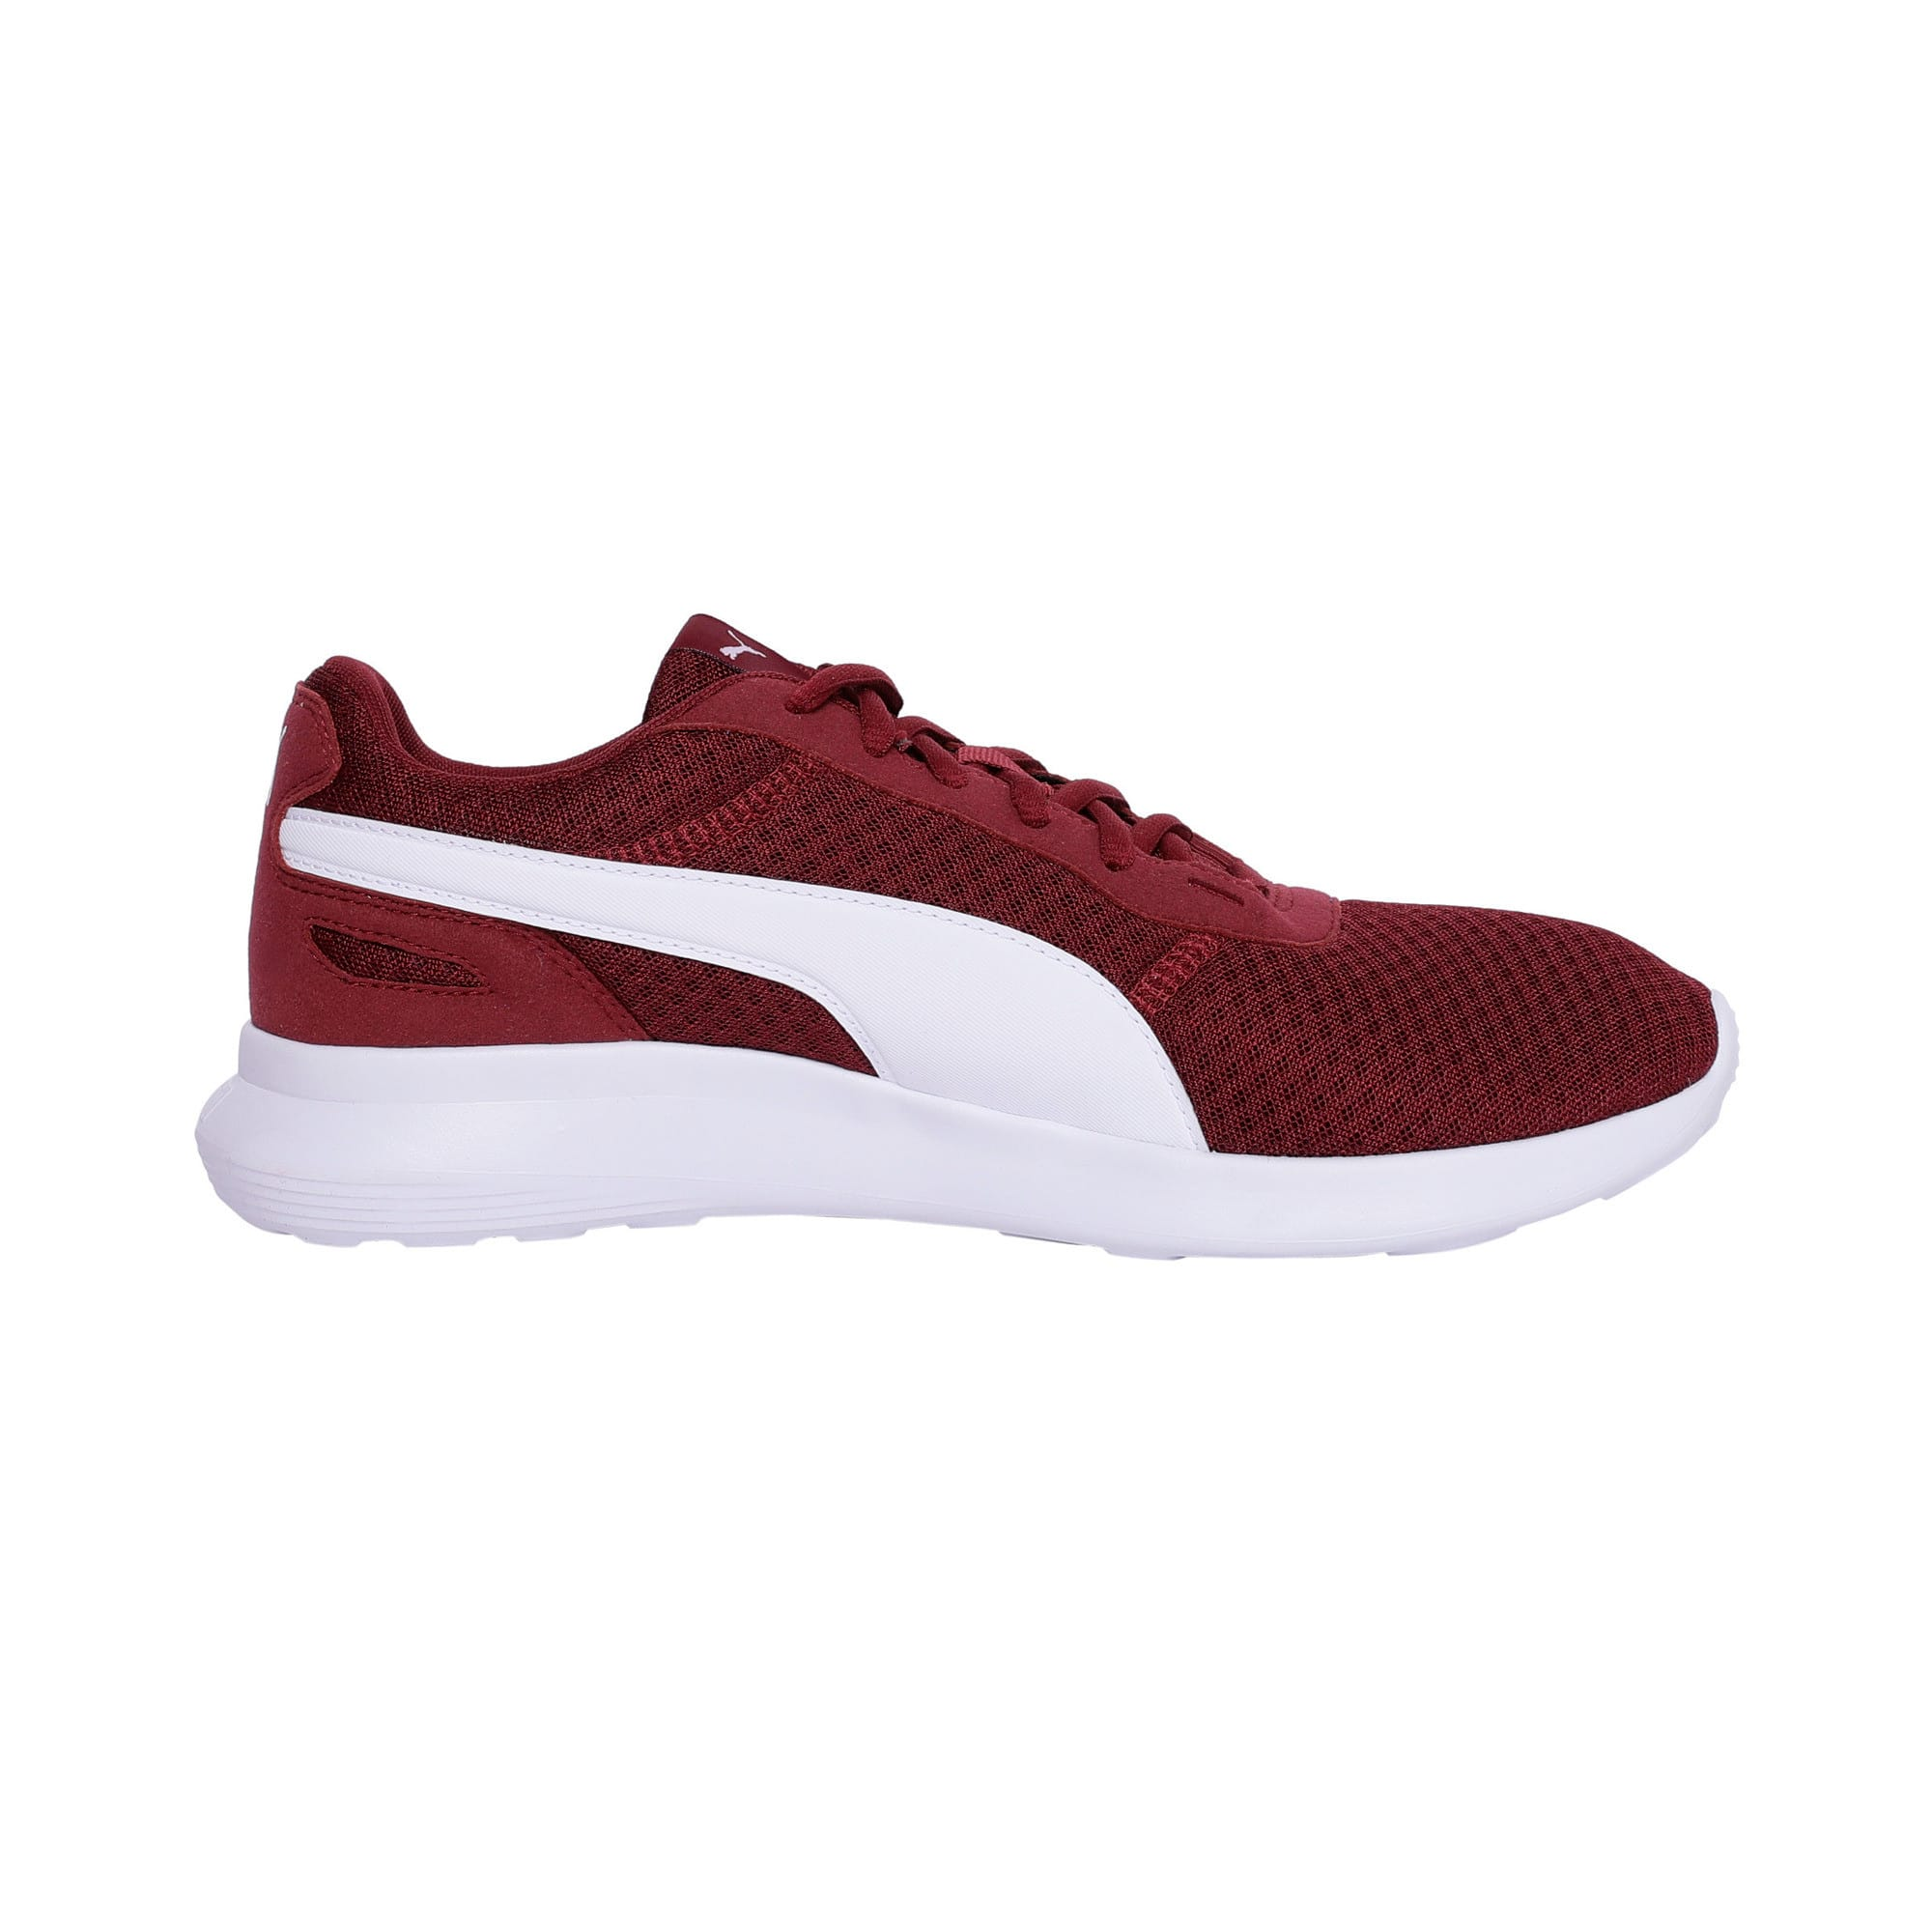 Thumbnail 5 of ST Activate Trainers, Cordovan-Puma White, medium-IND